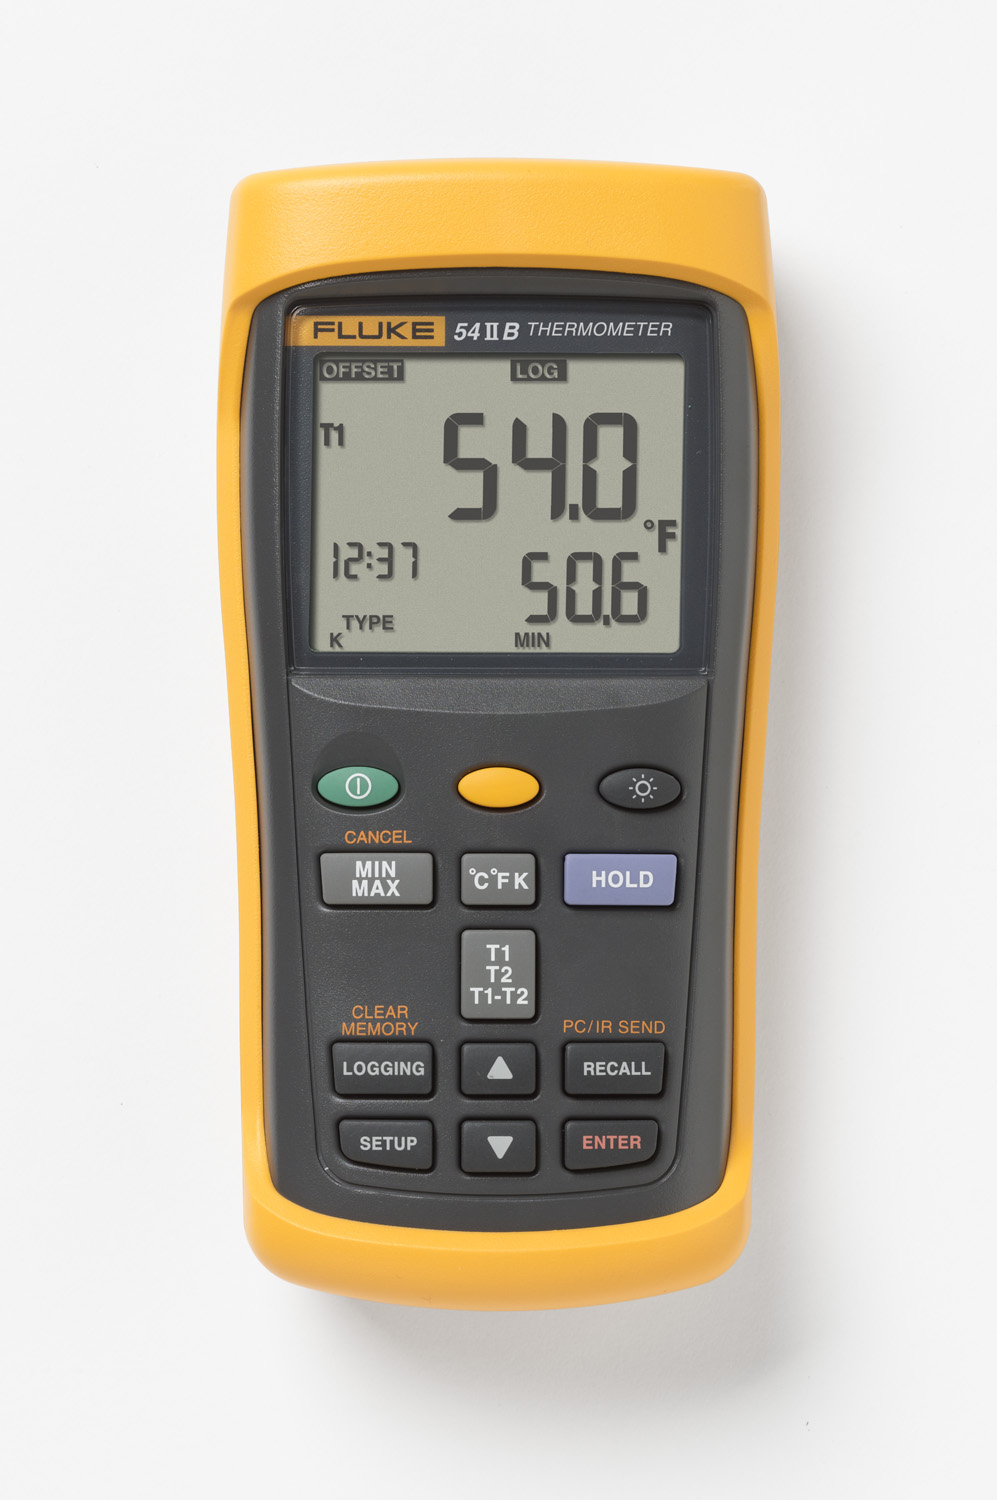 Fluke,FLUKE-54-2 B 60HZ,DUAL INPUT THERMOMETER W/ USB RECORDING, 60HZ NOISE REJECTION